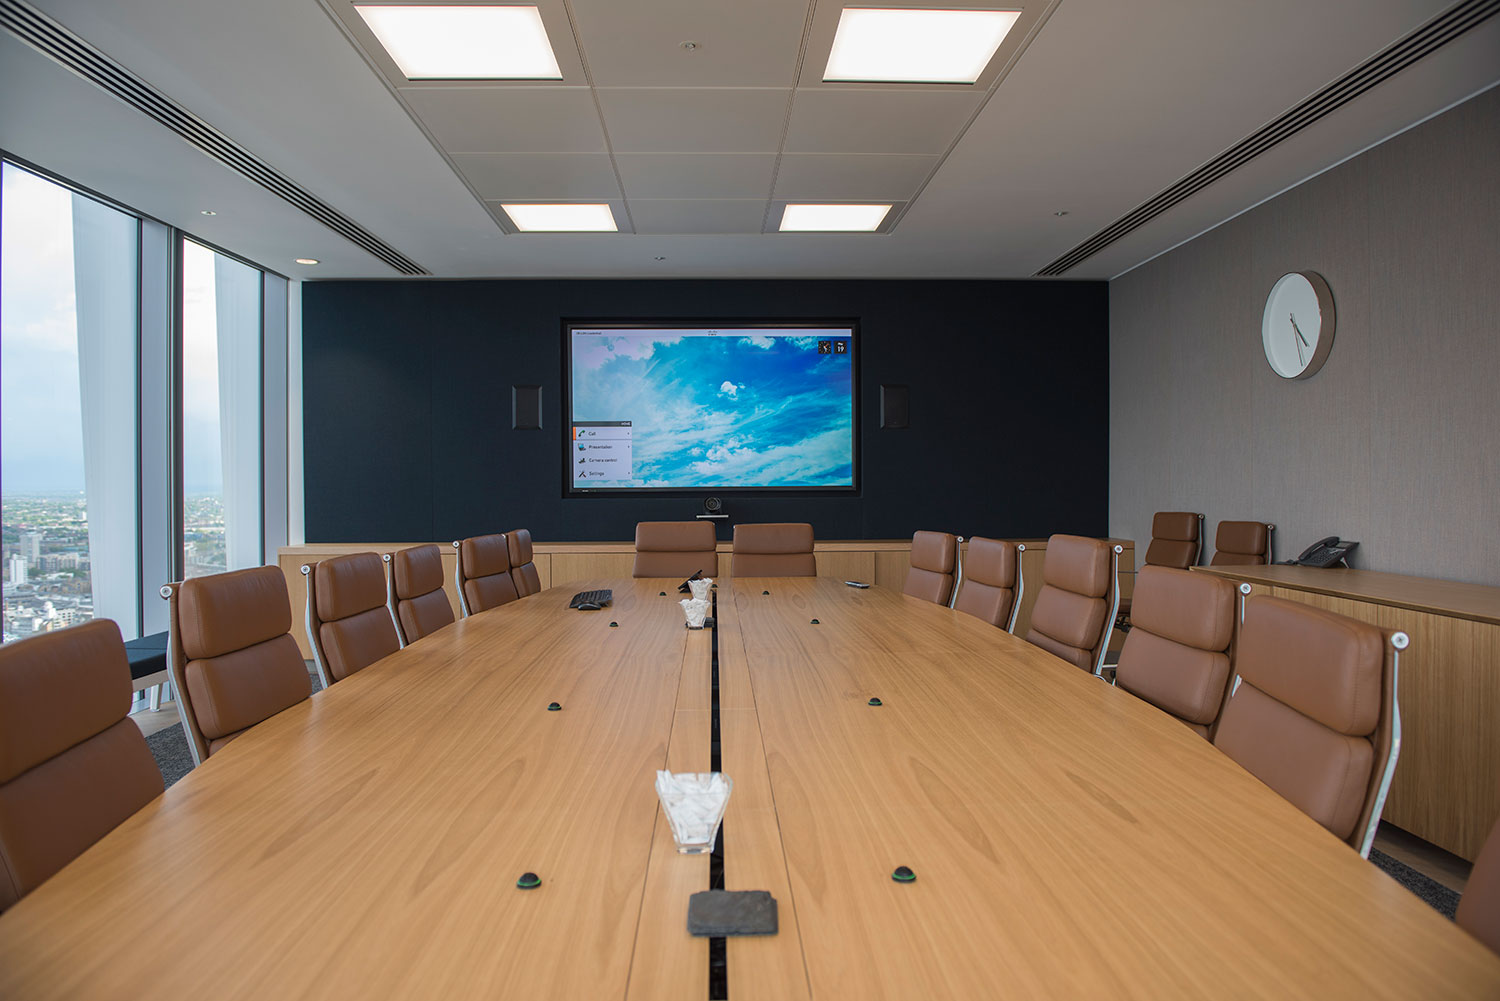 lancashire meeting video conferencing solution London